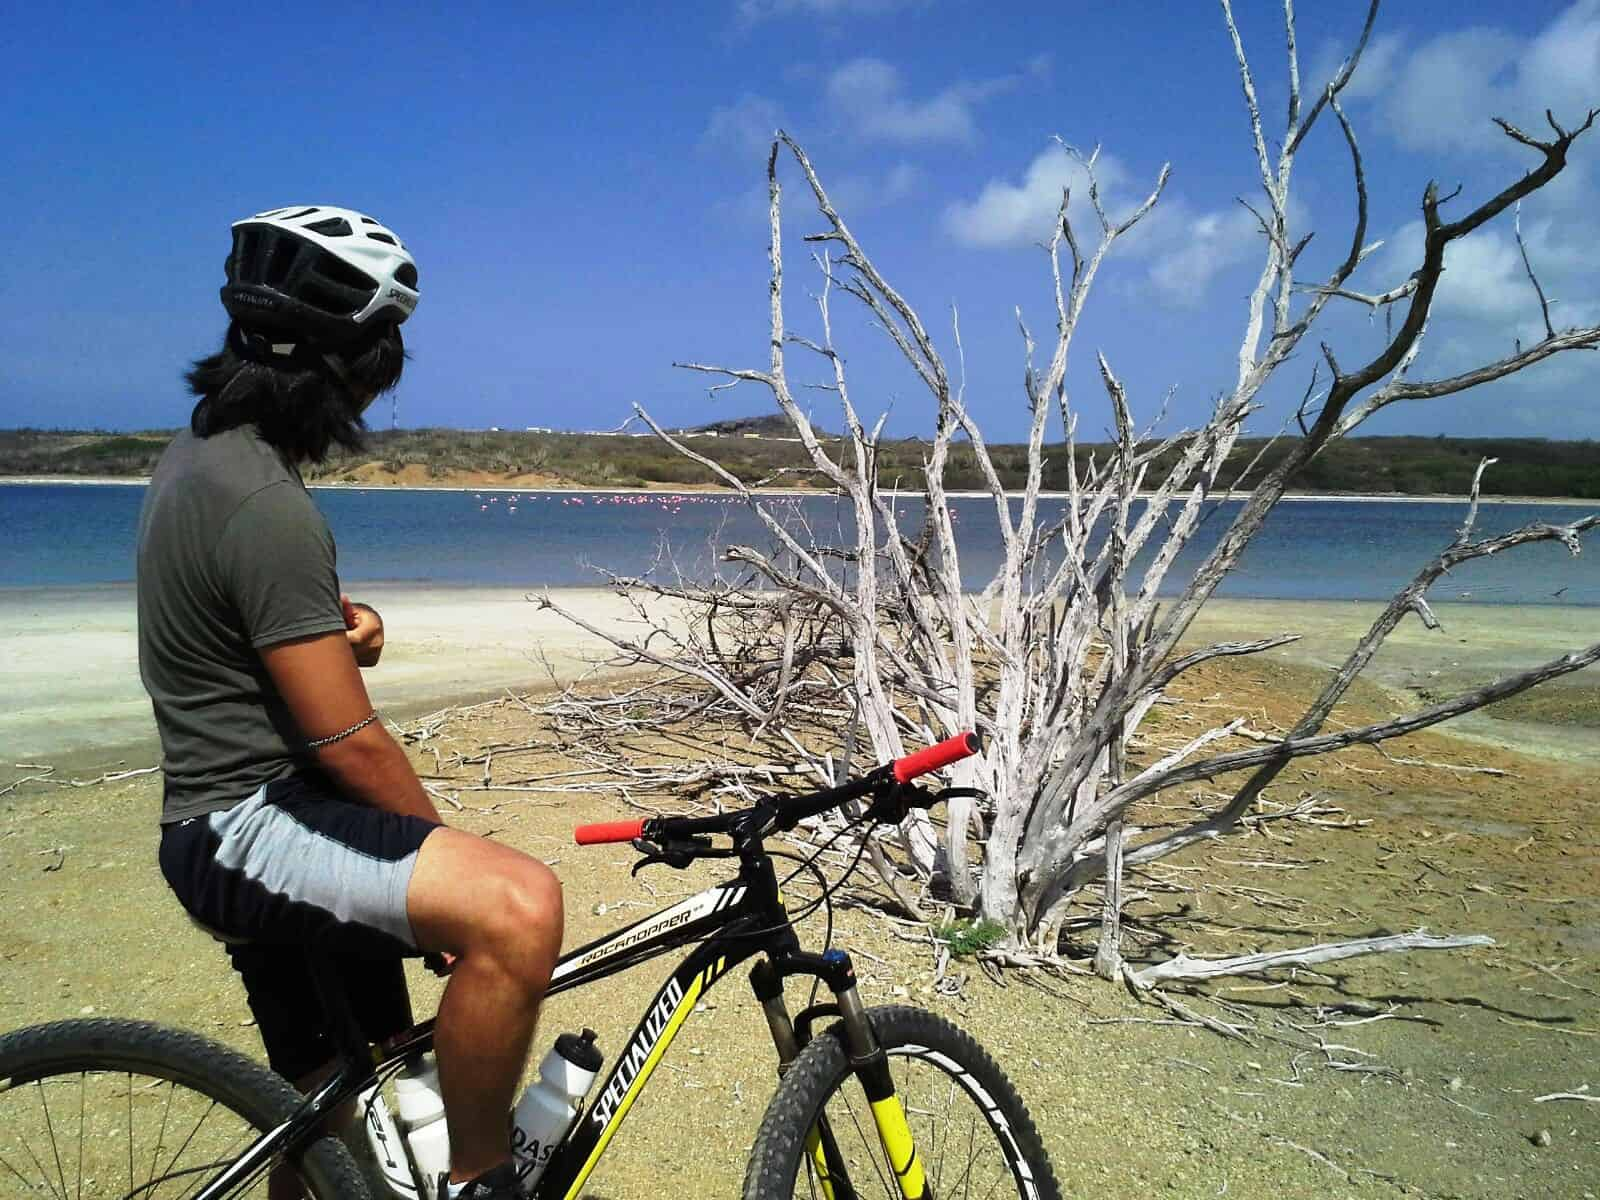 Mountain Bike Curacao 2- on the Caribbean island of Curacao, Netherlands Antilles